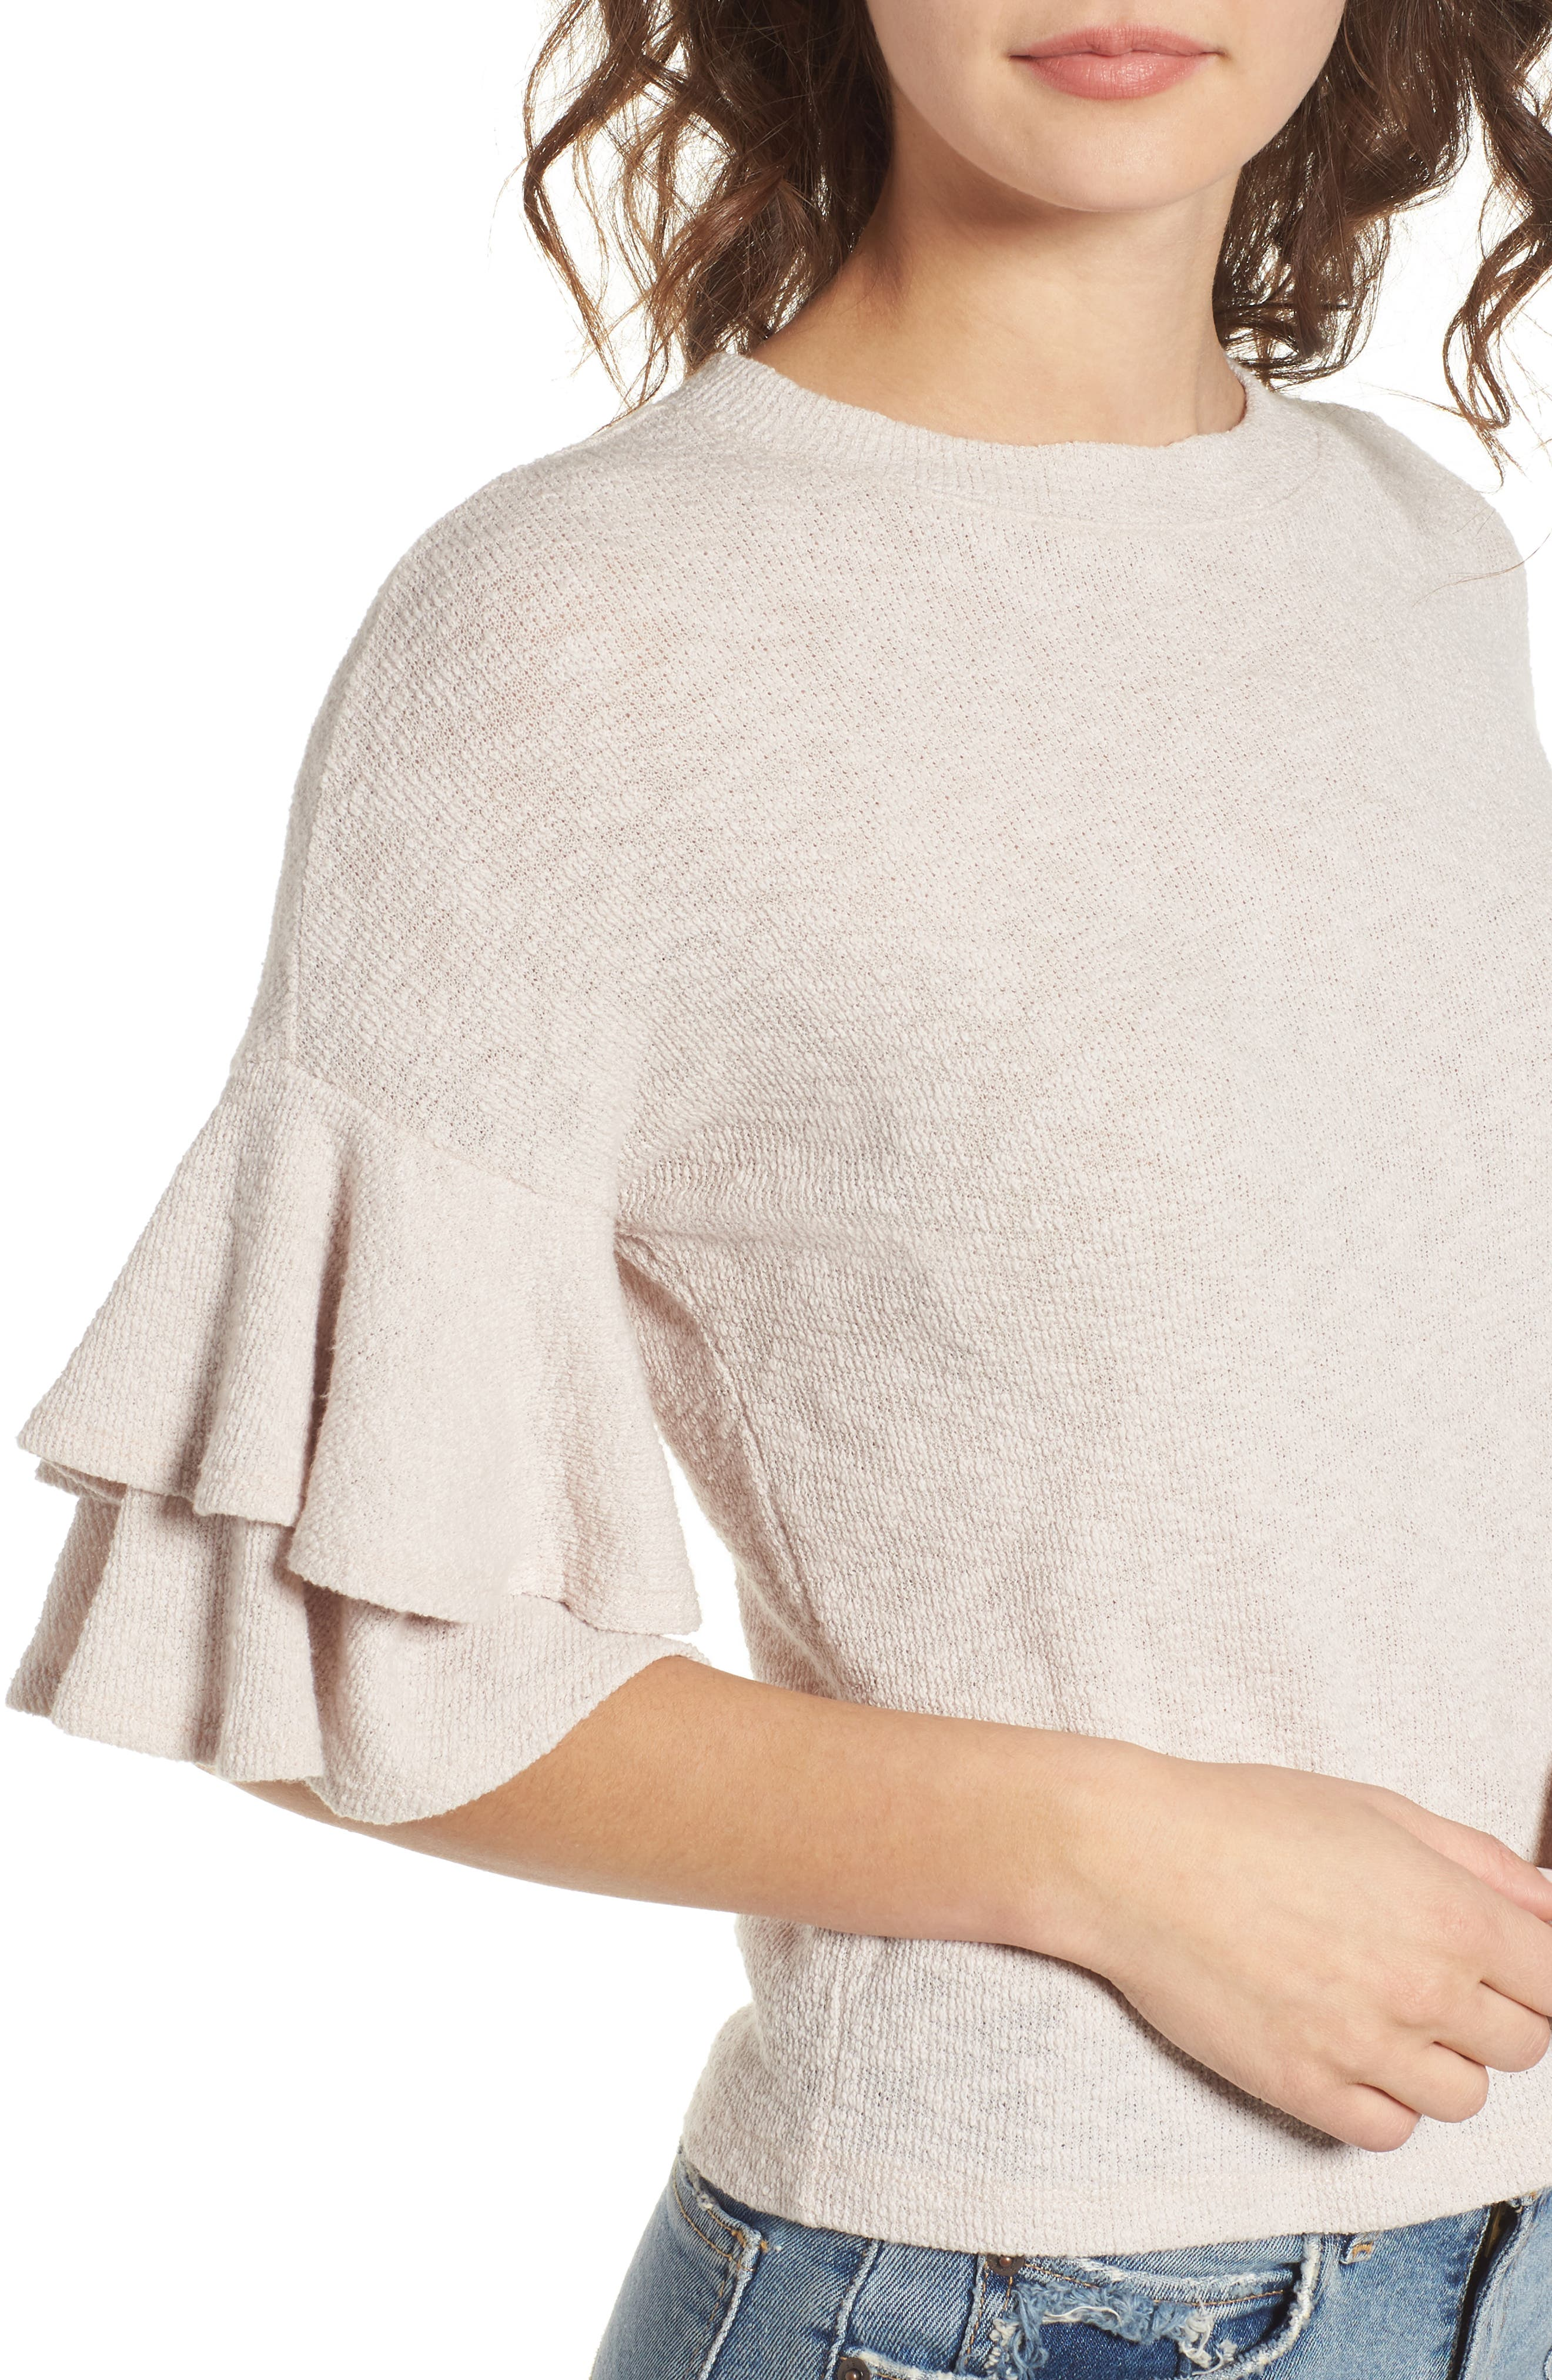 Cherry Blossom Ruffle Sleeve Top,                             Alternate thumbnail 5, color,                             Pale Pink